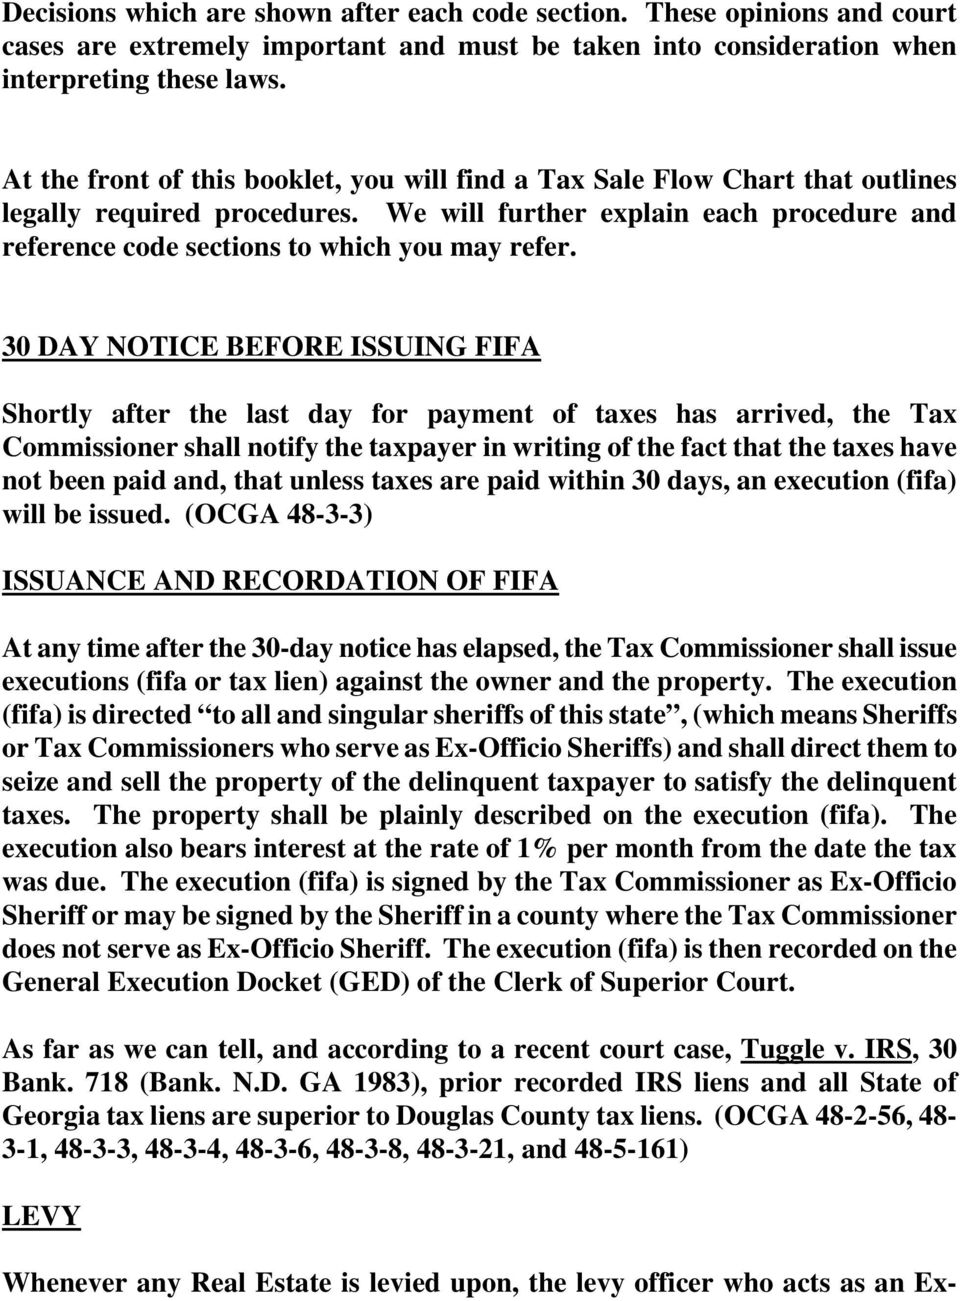 30 DAY NOTICE BEFORE ISSUING FIFA Shortly after the last day for payment of taxes has arrived, the Tax Commissioner shall notify the taxpayer in writing of the fact that the taxes have not been paid